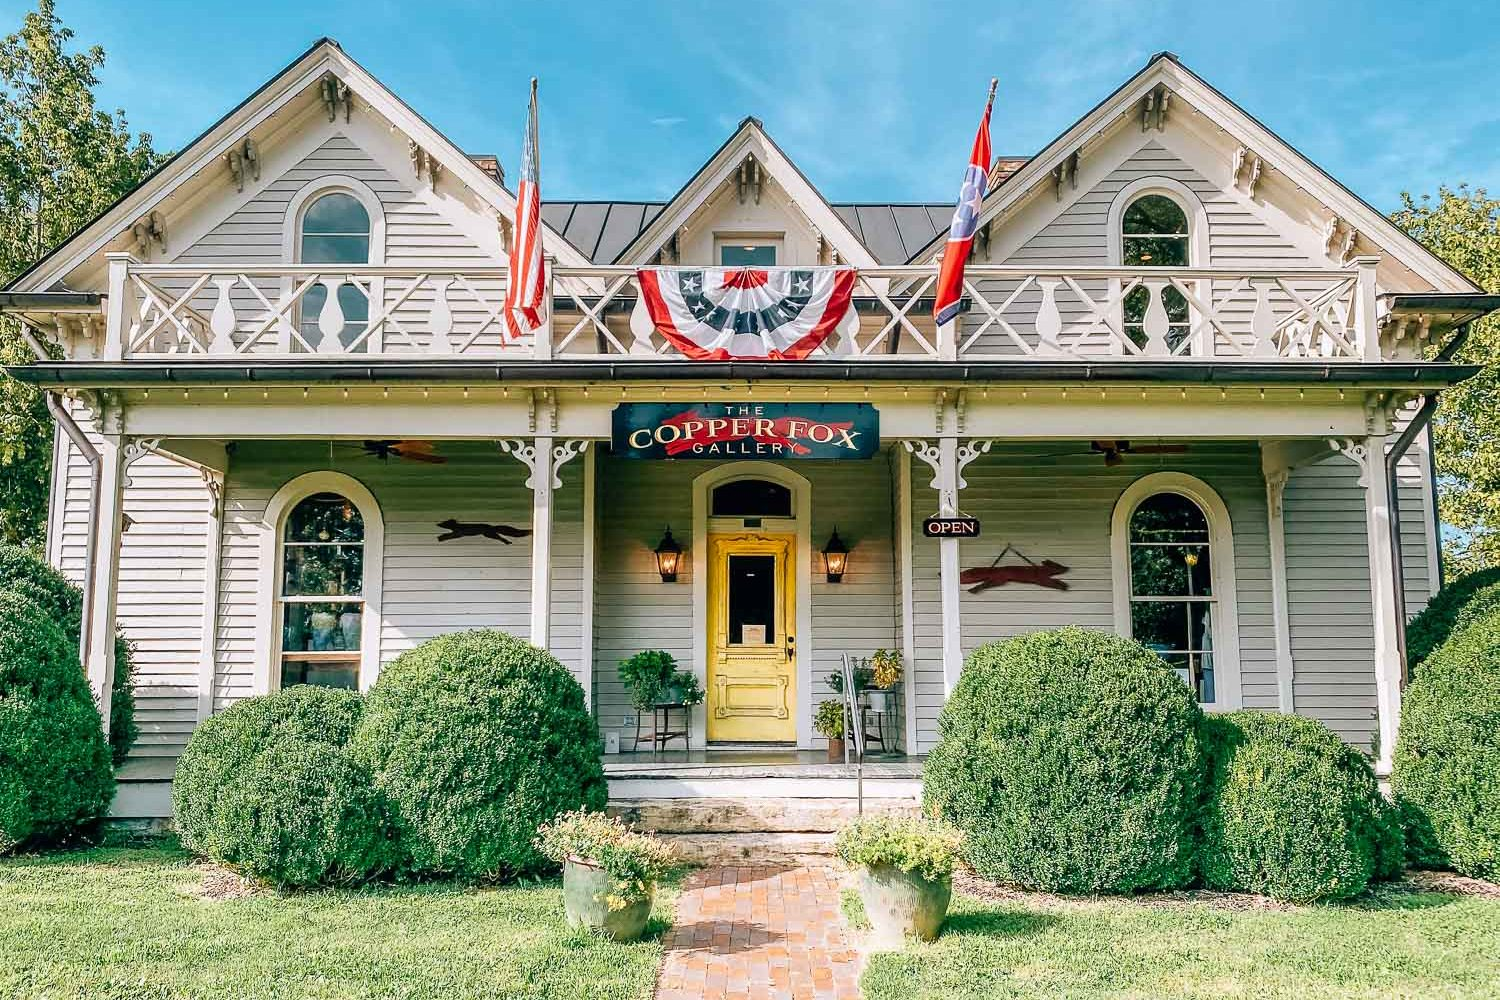 Another thing to do in Leiper's fork is visit this art gallery. This historic southern home that is now the Copper Fox Gallery in Leiper's Fork, Tennessee. There is an American flag and Tennessee state flag hanging from the upstairs balcony.